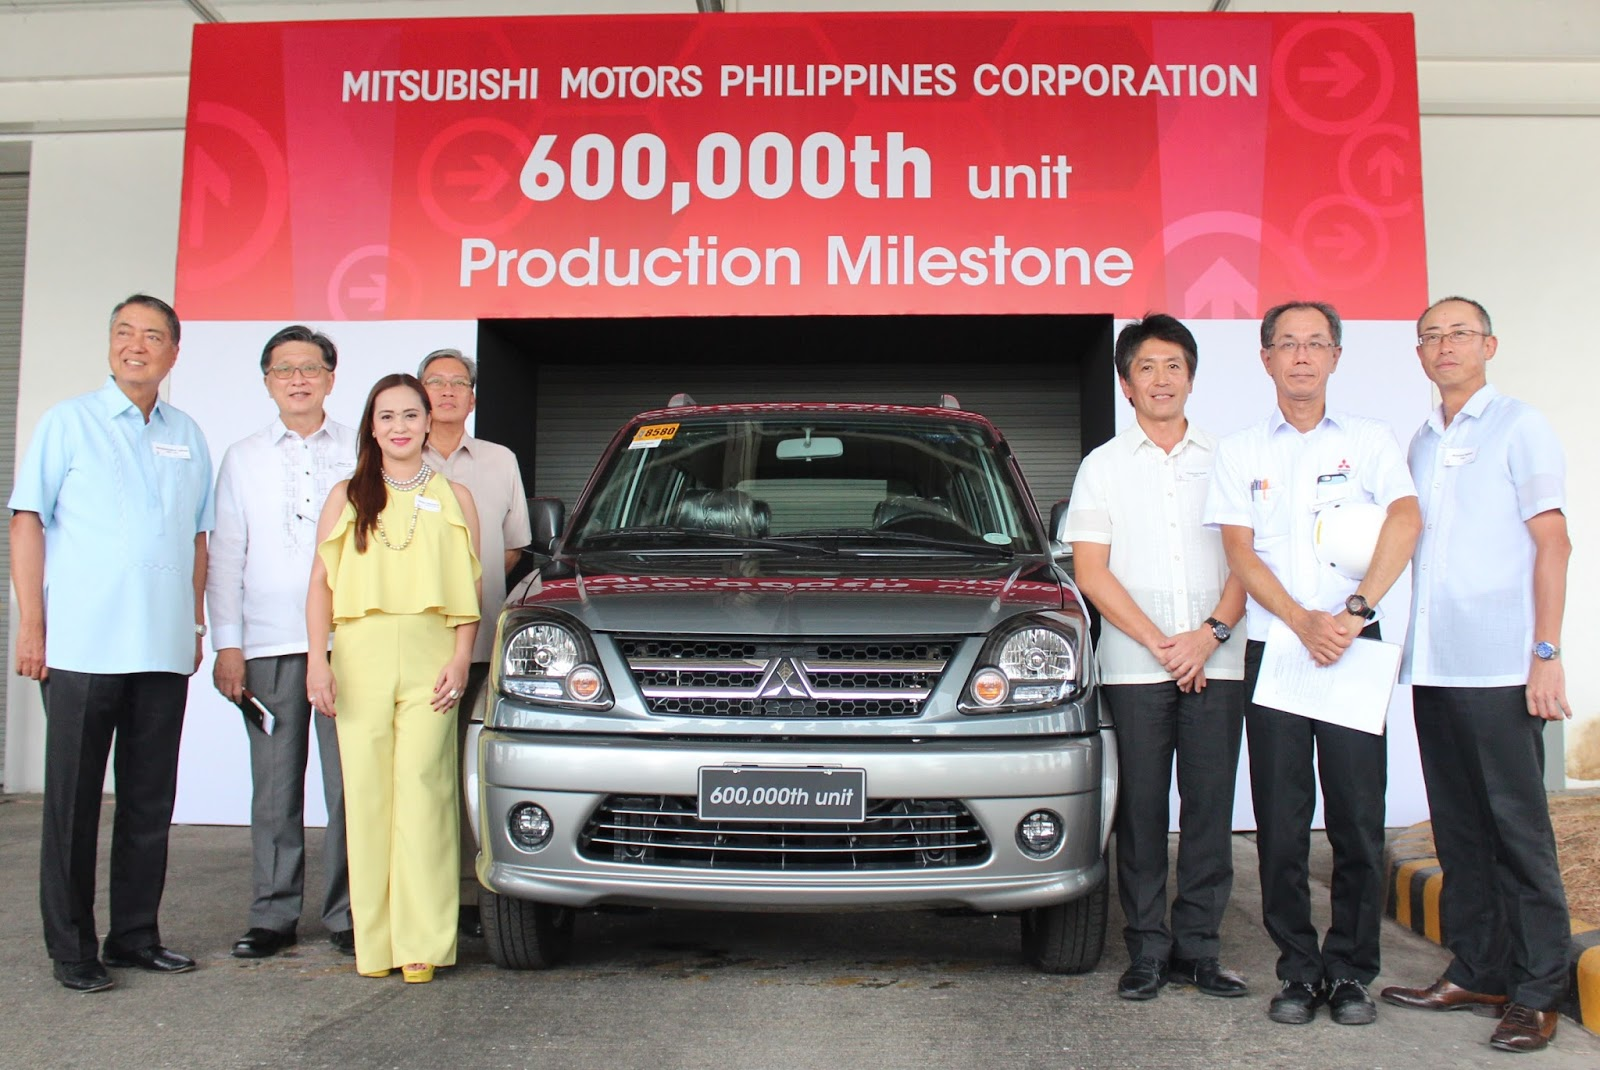 Mitsubishi Motors Philippines Celebrated Its 600,000th unit Production Milestone